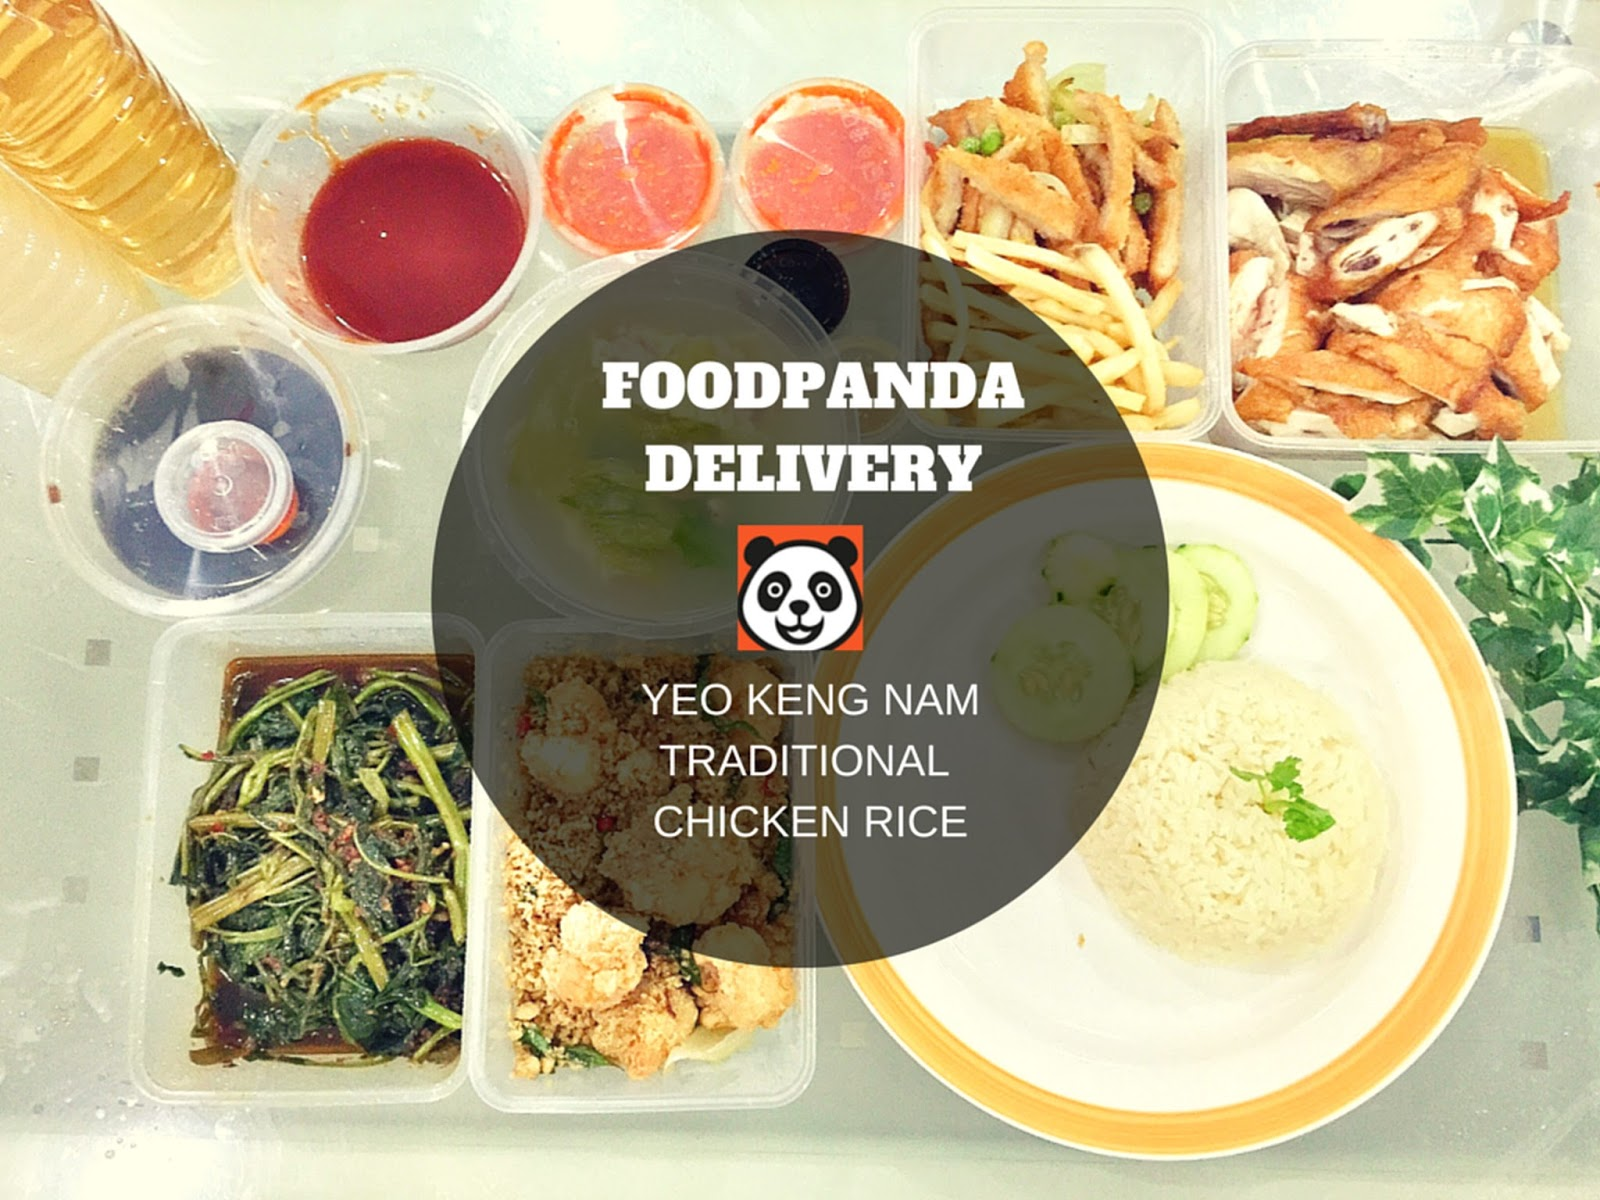 Foodpanda Delivery - Yeo Keng Nam Traditional Chicken Rice